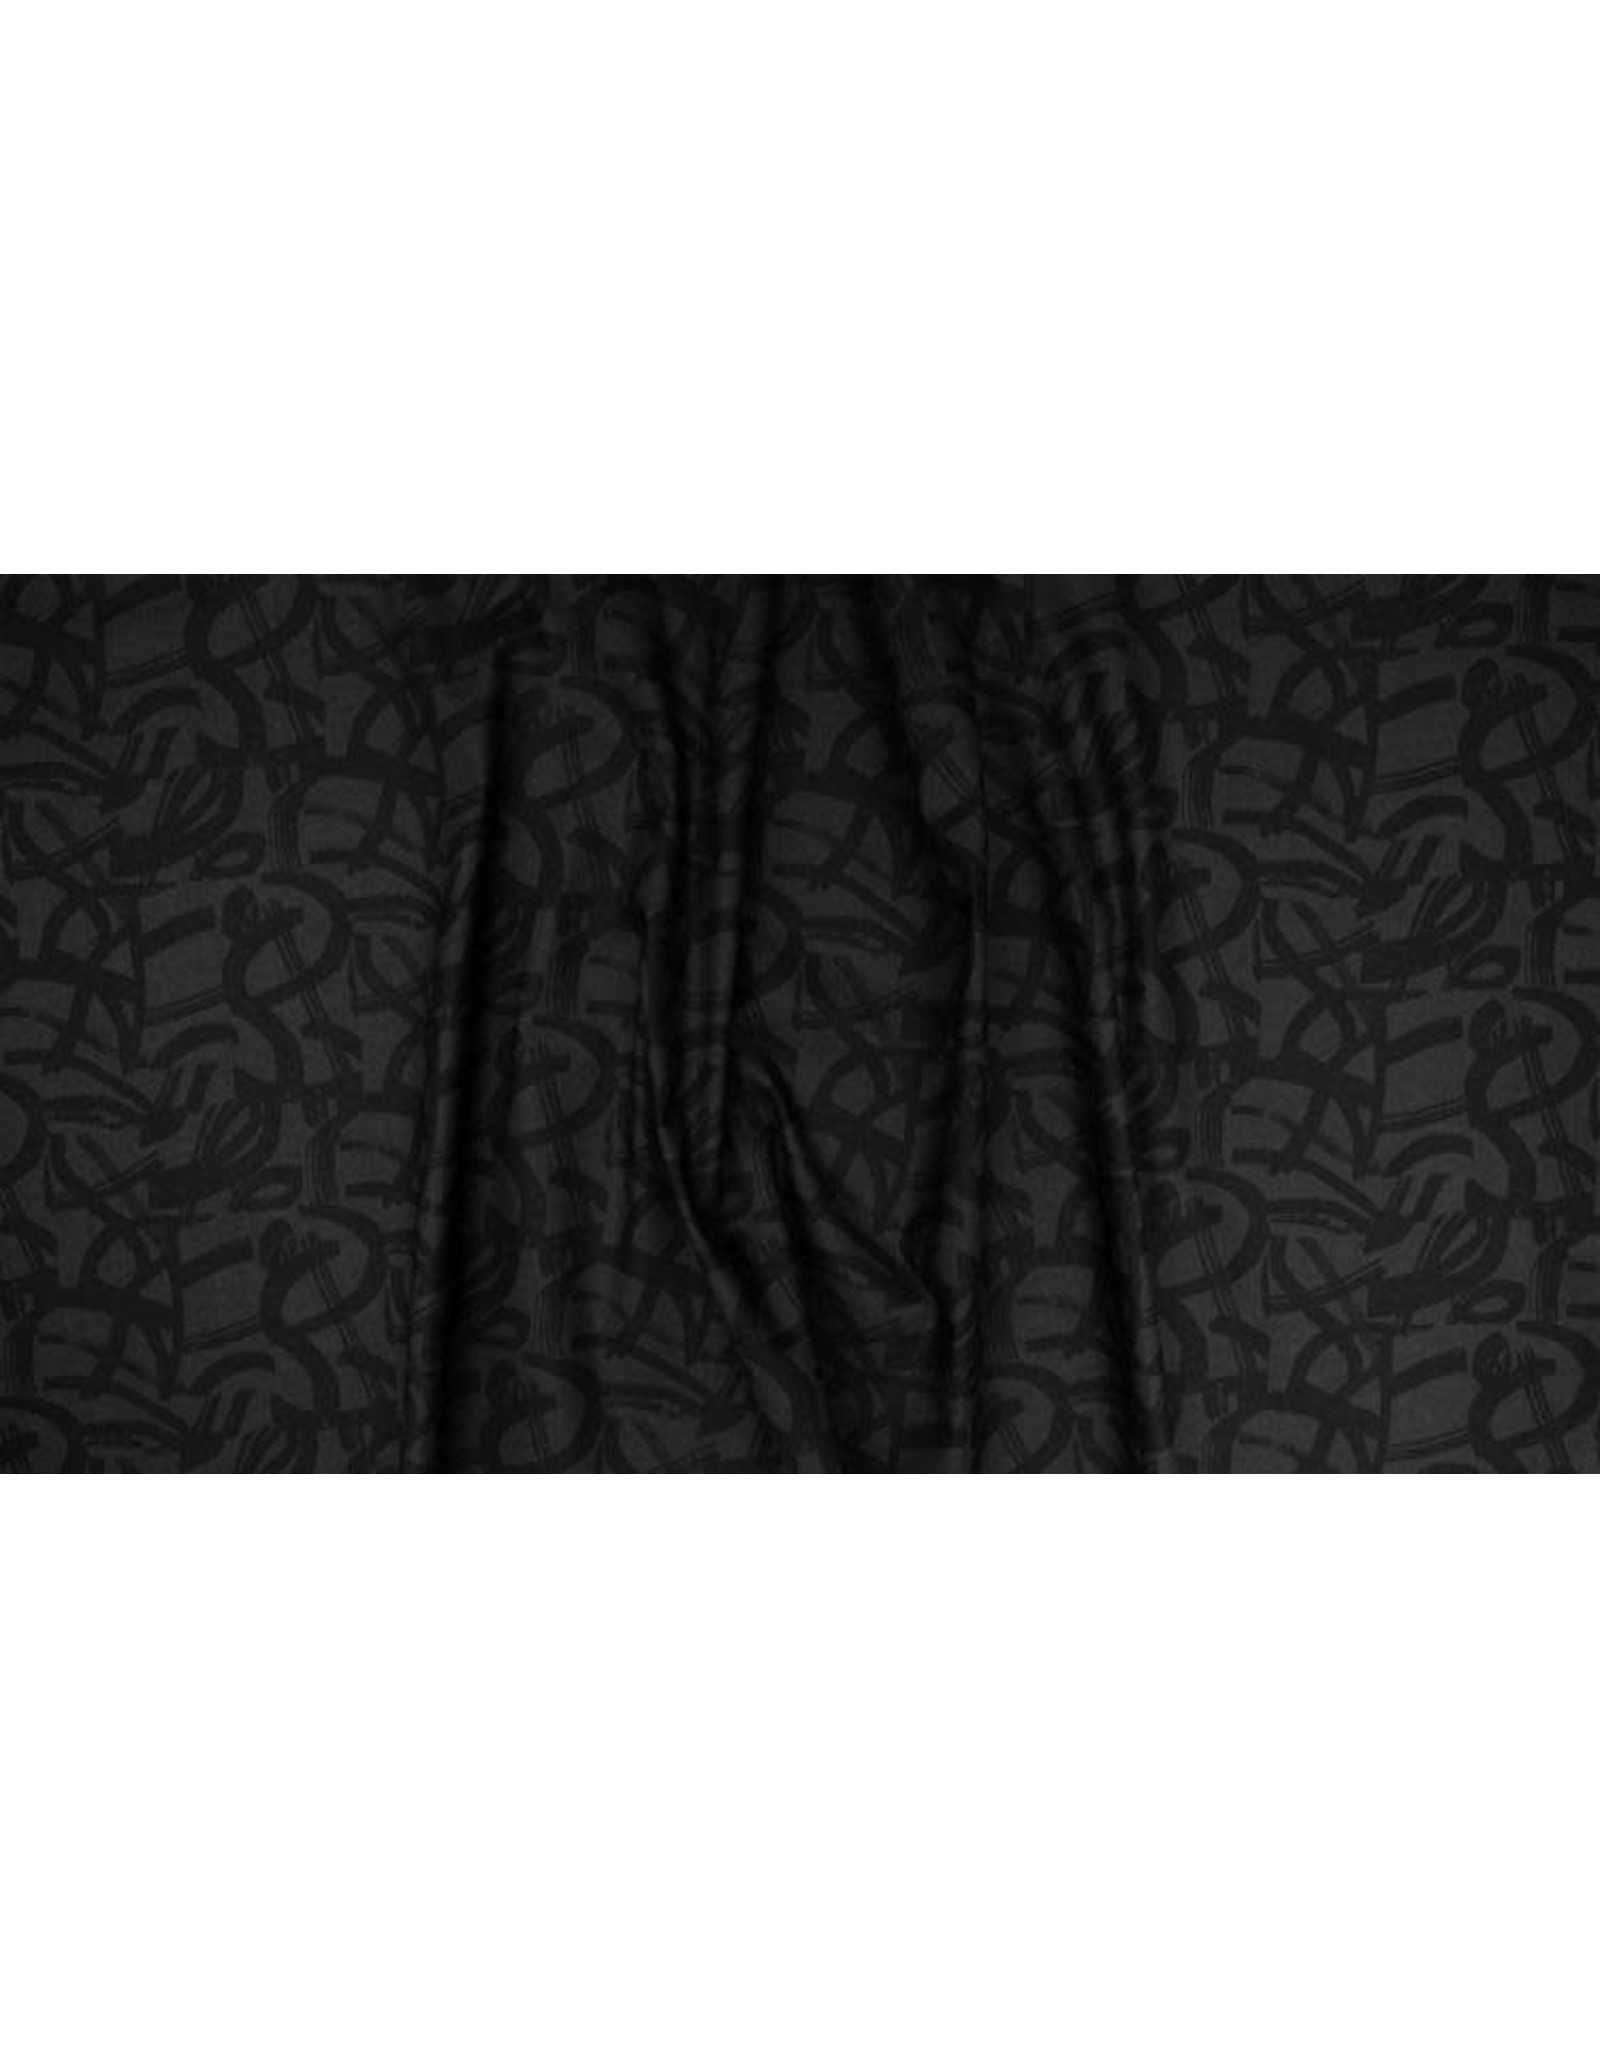 Cotton + Steel ON SALE-In Bloom, On the Way in Black, Fabric FULL-Yards